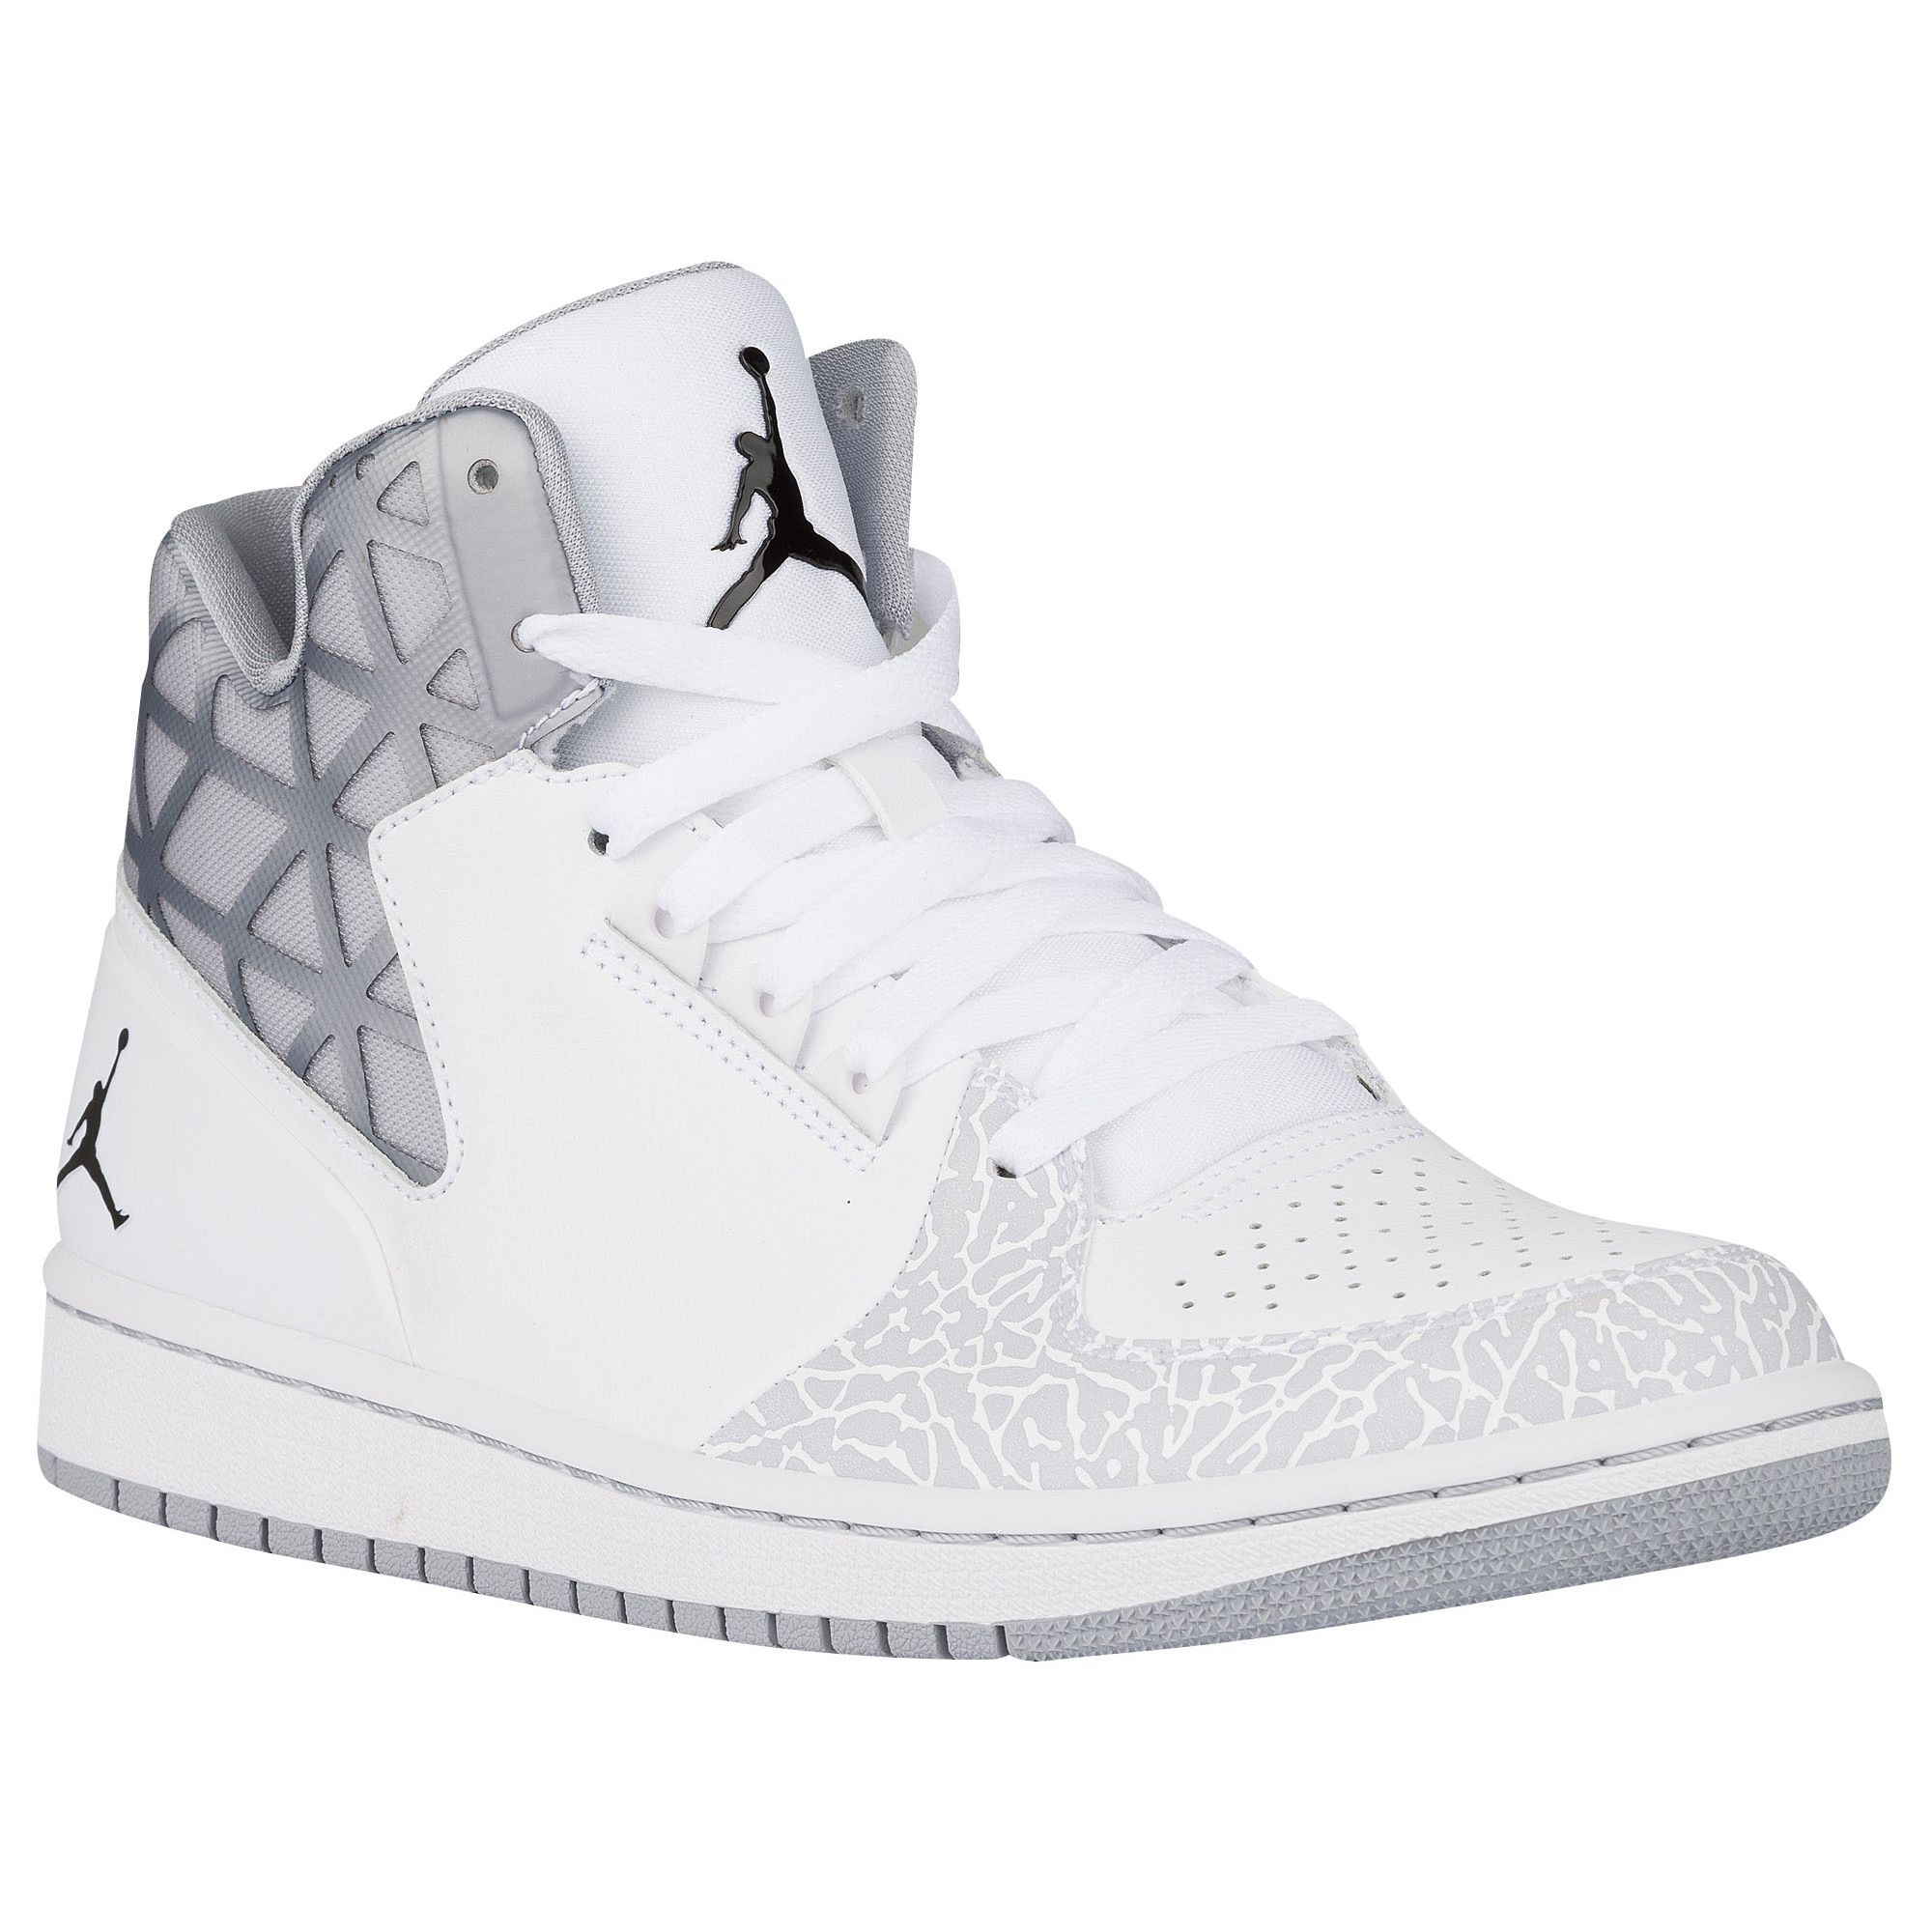 0297b7de9f4775 Jordan 1 Flight 3 - Men s - Basketball - Shoes - White Cool Grey ...